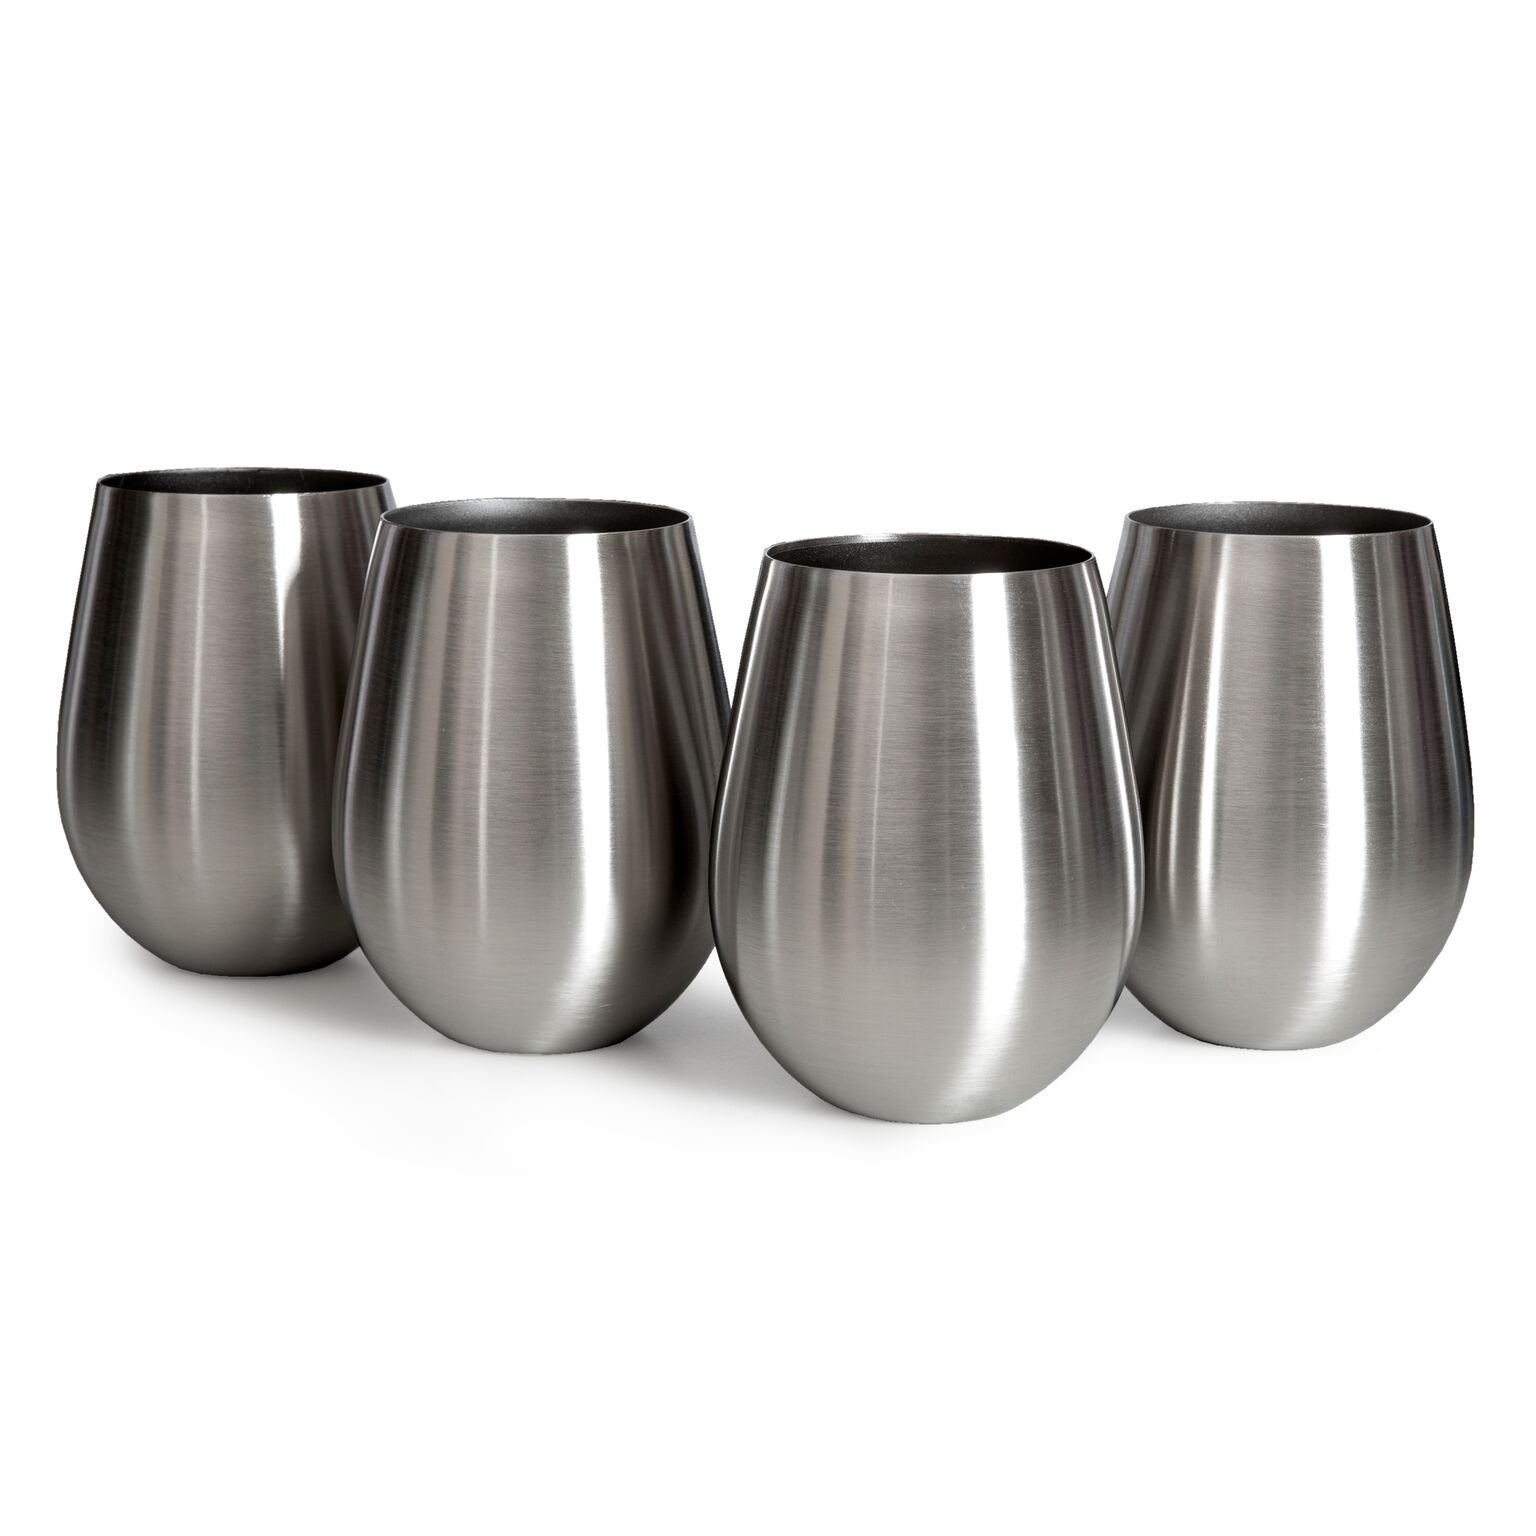 Sips Of Slainte Stemless Stainless Steel Wine Glasses (Original Metallic) by PureRockForm